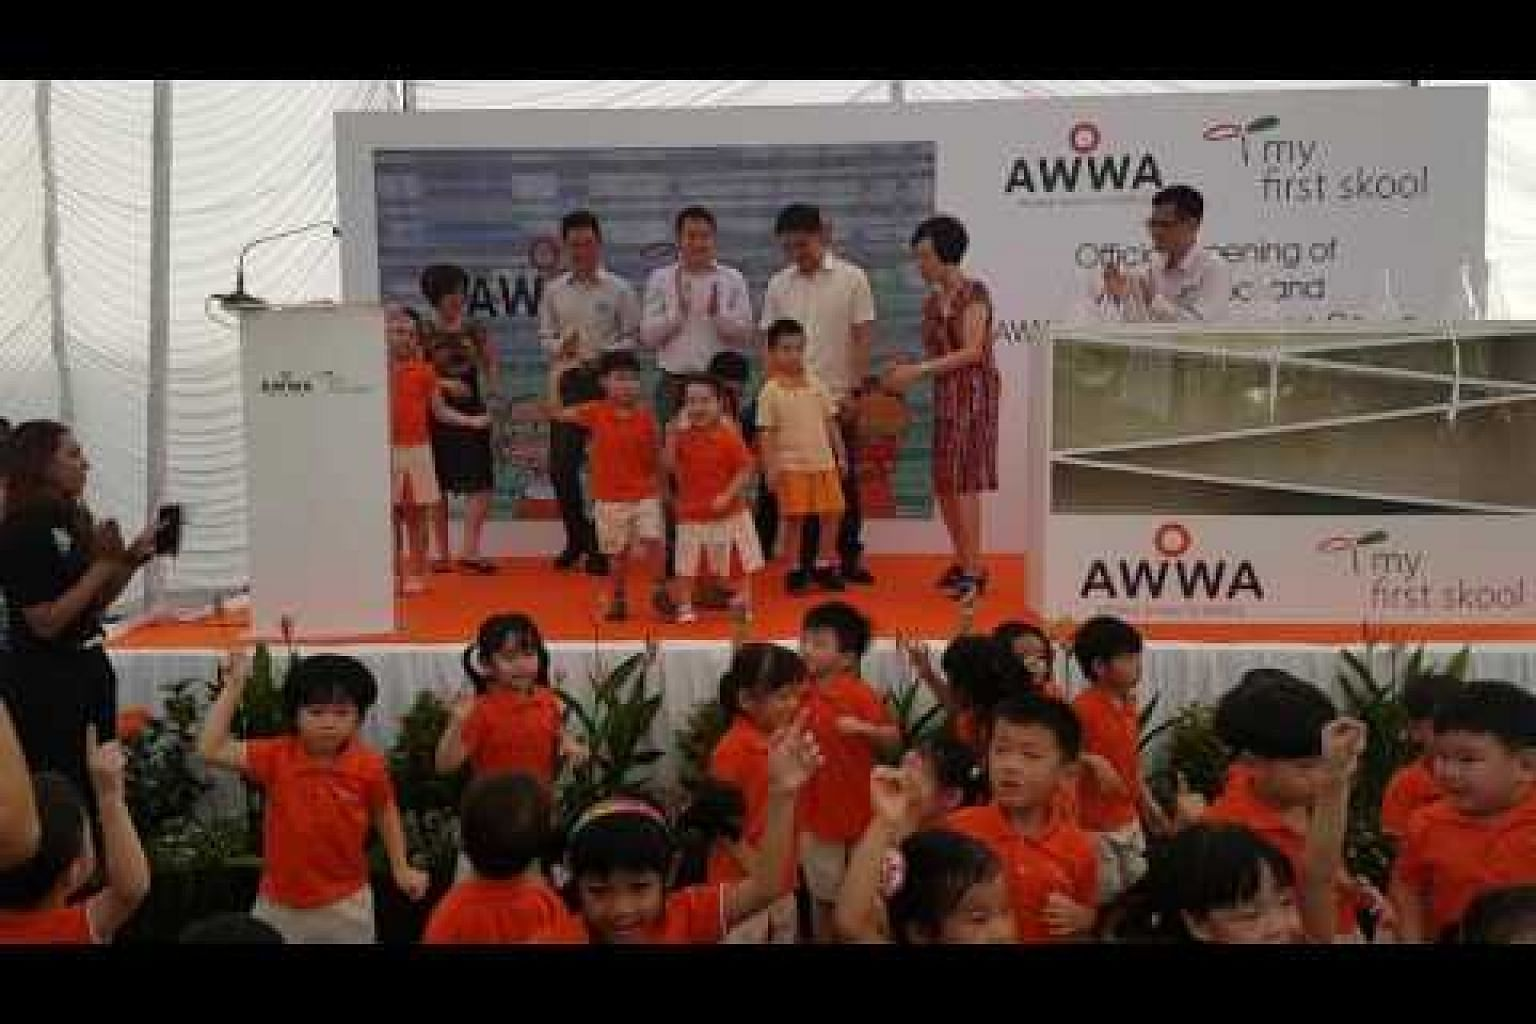 Official opening of My First Skool childcare centre and Awwa Early Intervention Centre